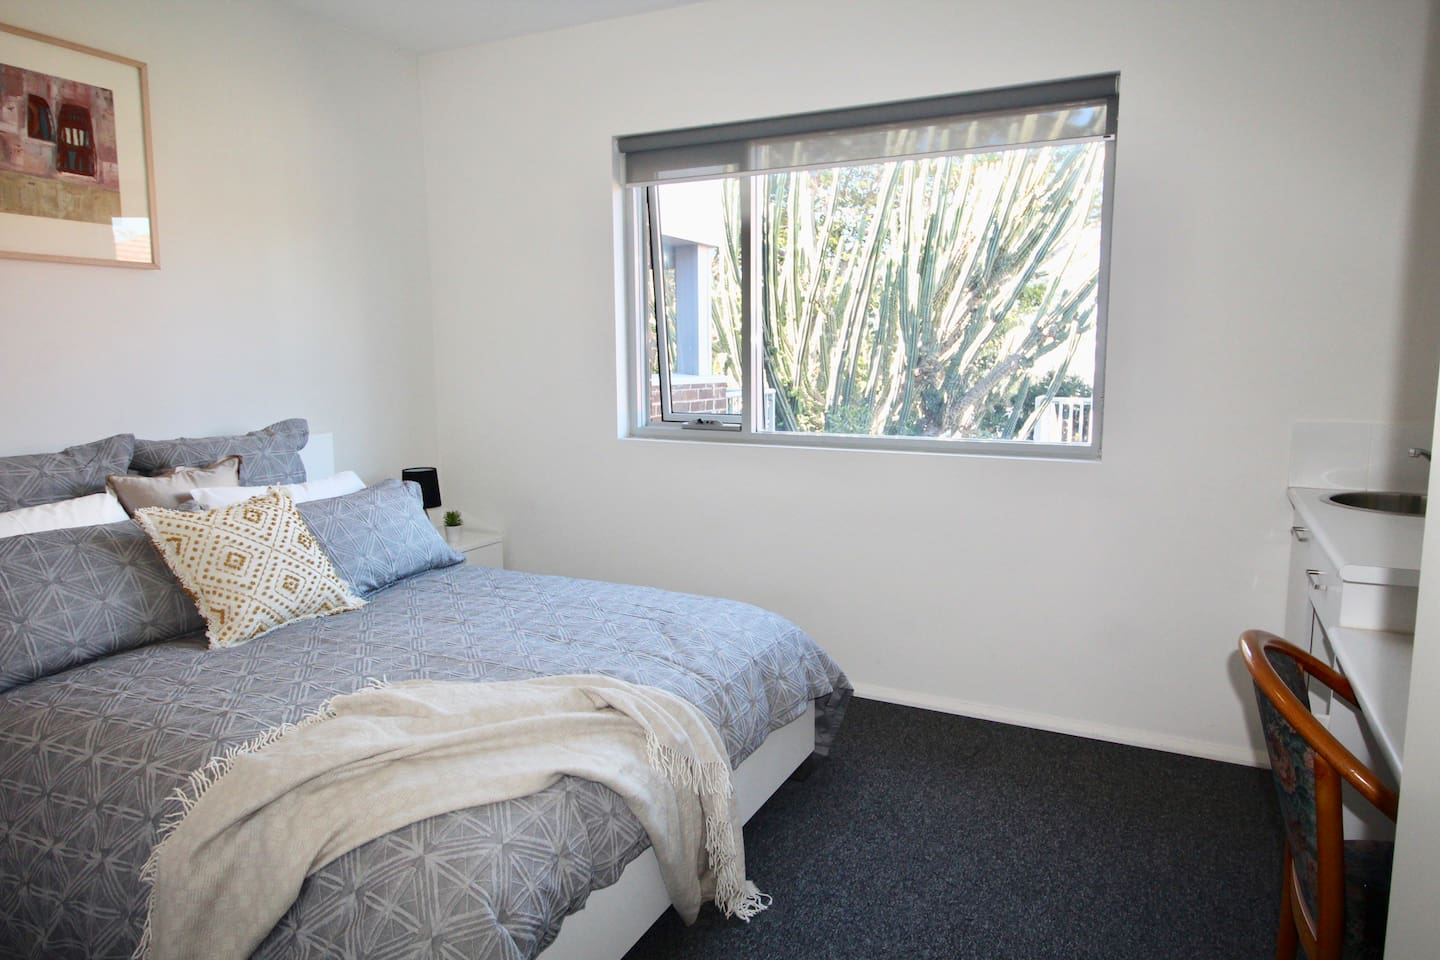 Comfortable double bed, kitchenette and dedicated work space